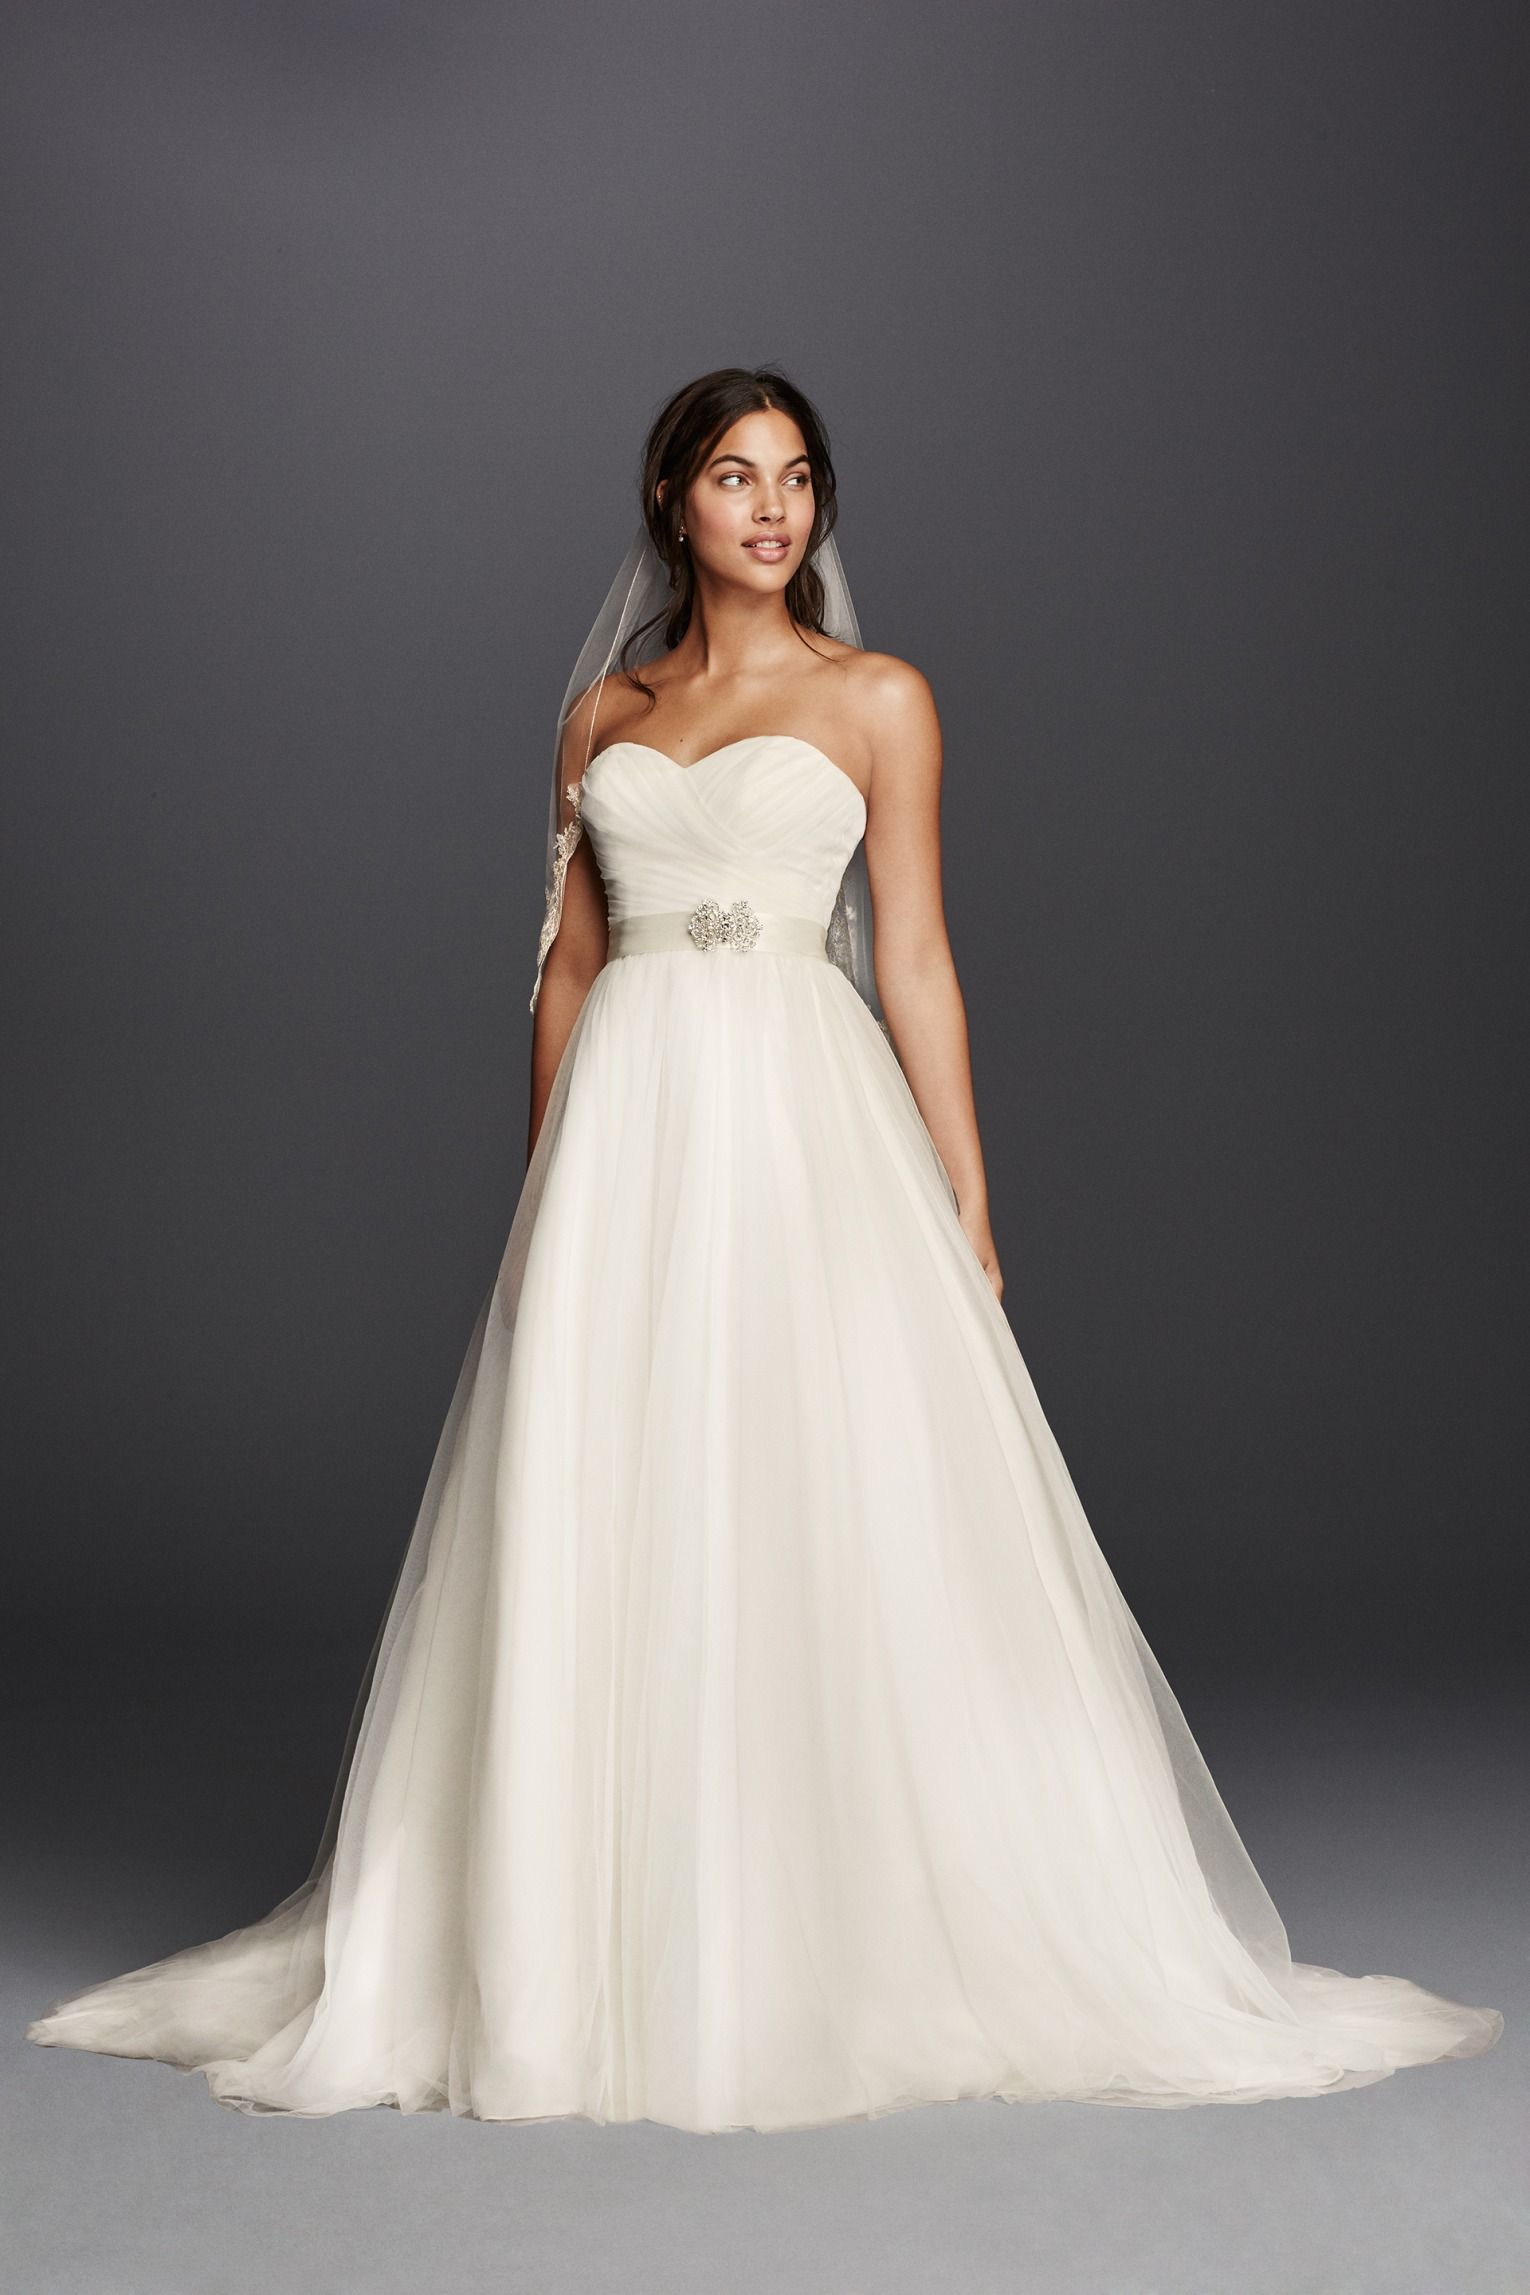 A classic ball gown for the traditional bride the soft pleats and